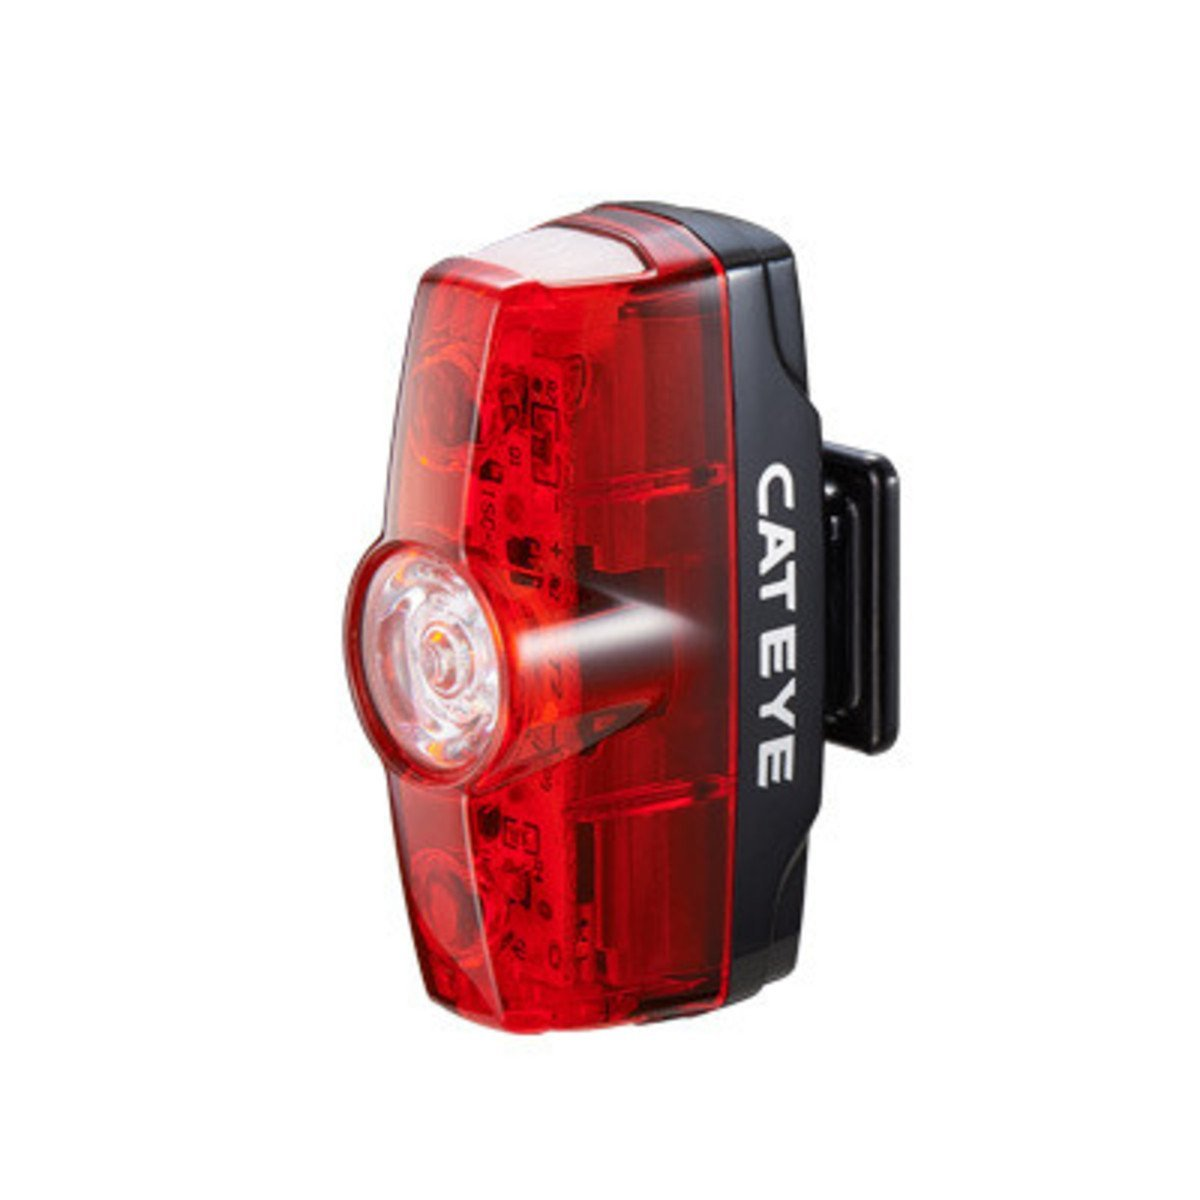 - Rapid Mini Rear Rechargeable Bike Light, 25 Lumens, BE SEEN: The Rapid Mini's LEDs give off 25 lumens for excellent visibility. By CatEye